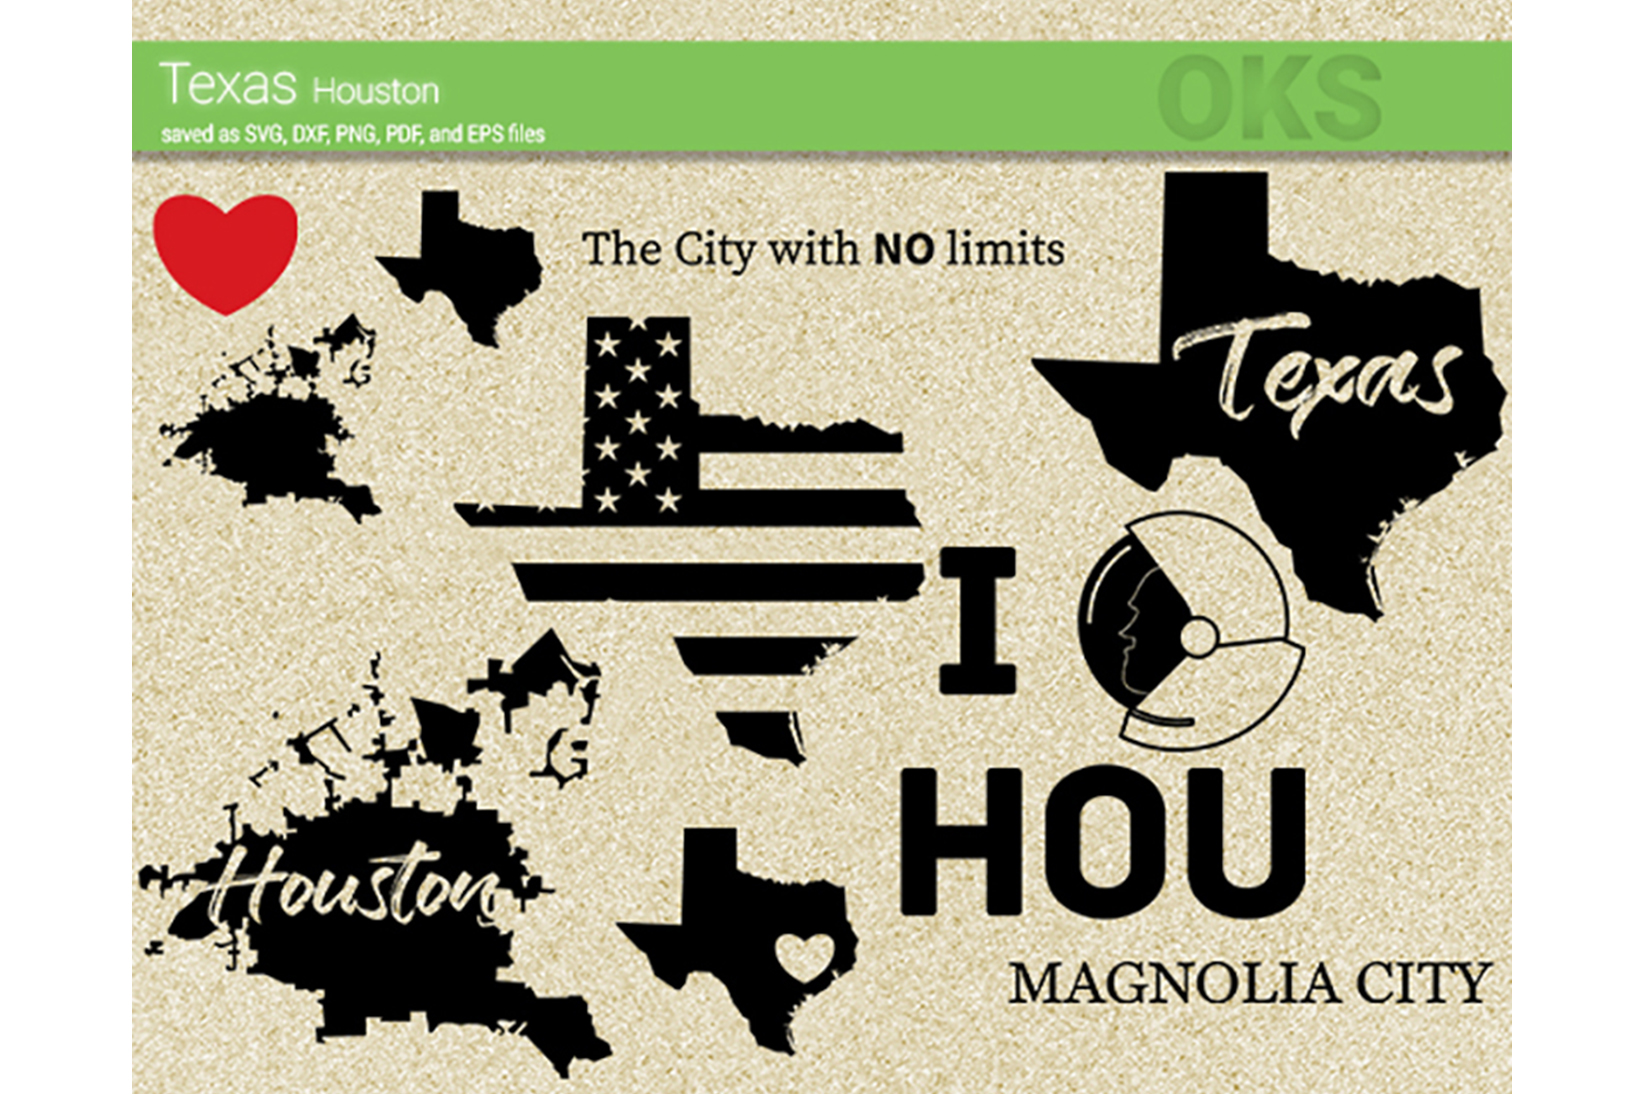 Download Free Texas Houston Svg Vector Graphic By Crafteroks Creative Fabrica for Cricut Explore, Silhouette and other cutting machines.